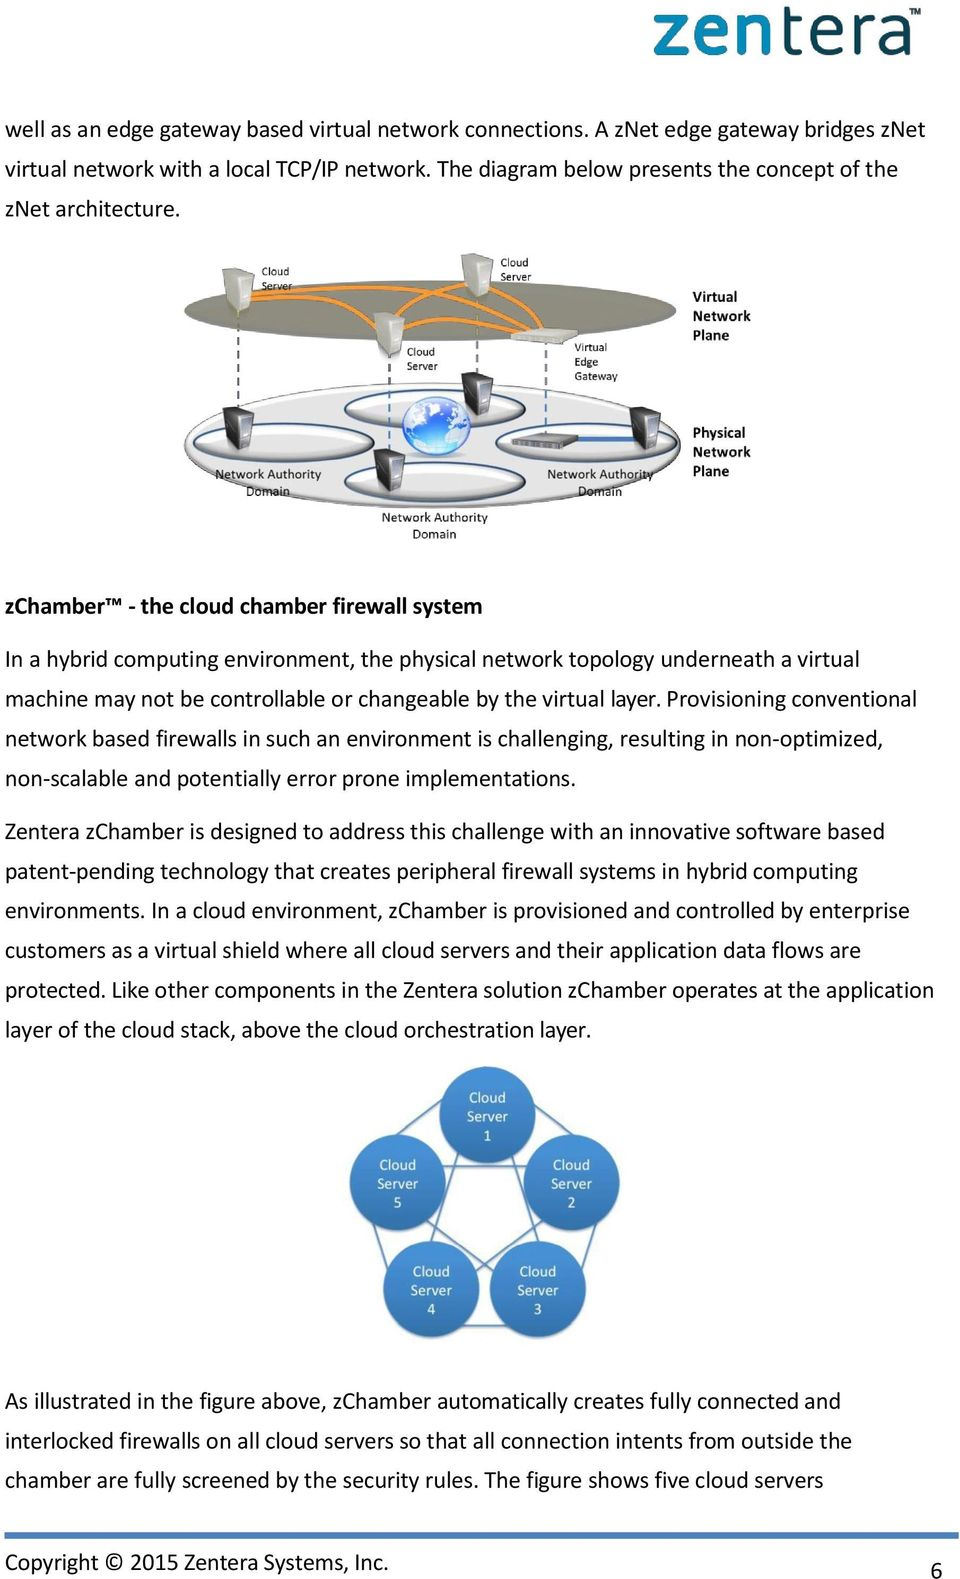 zchamber - the cloud chamber firewall system In a hybrid computing environment, the physical network topology underneath a virtual machine may not be controllable or changeable by the virtual layer.